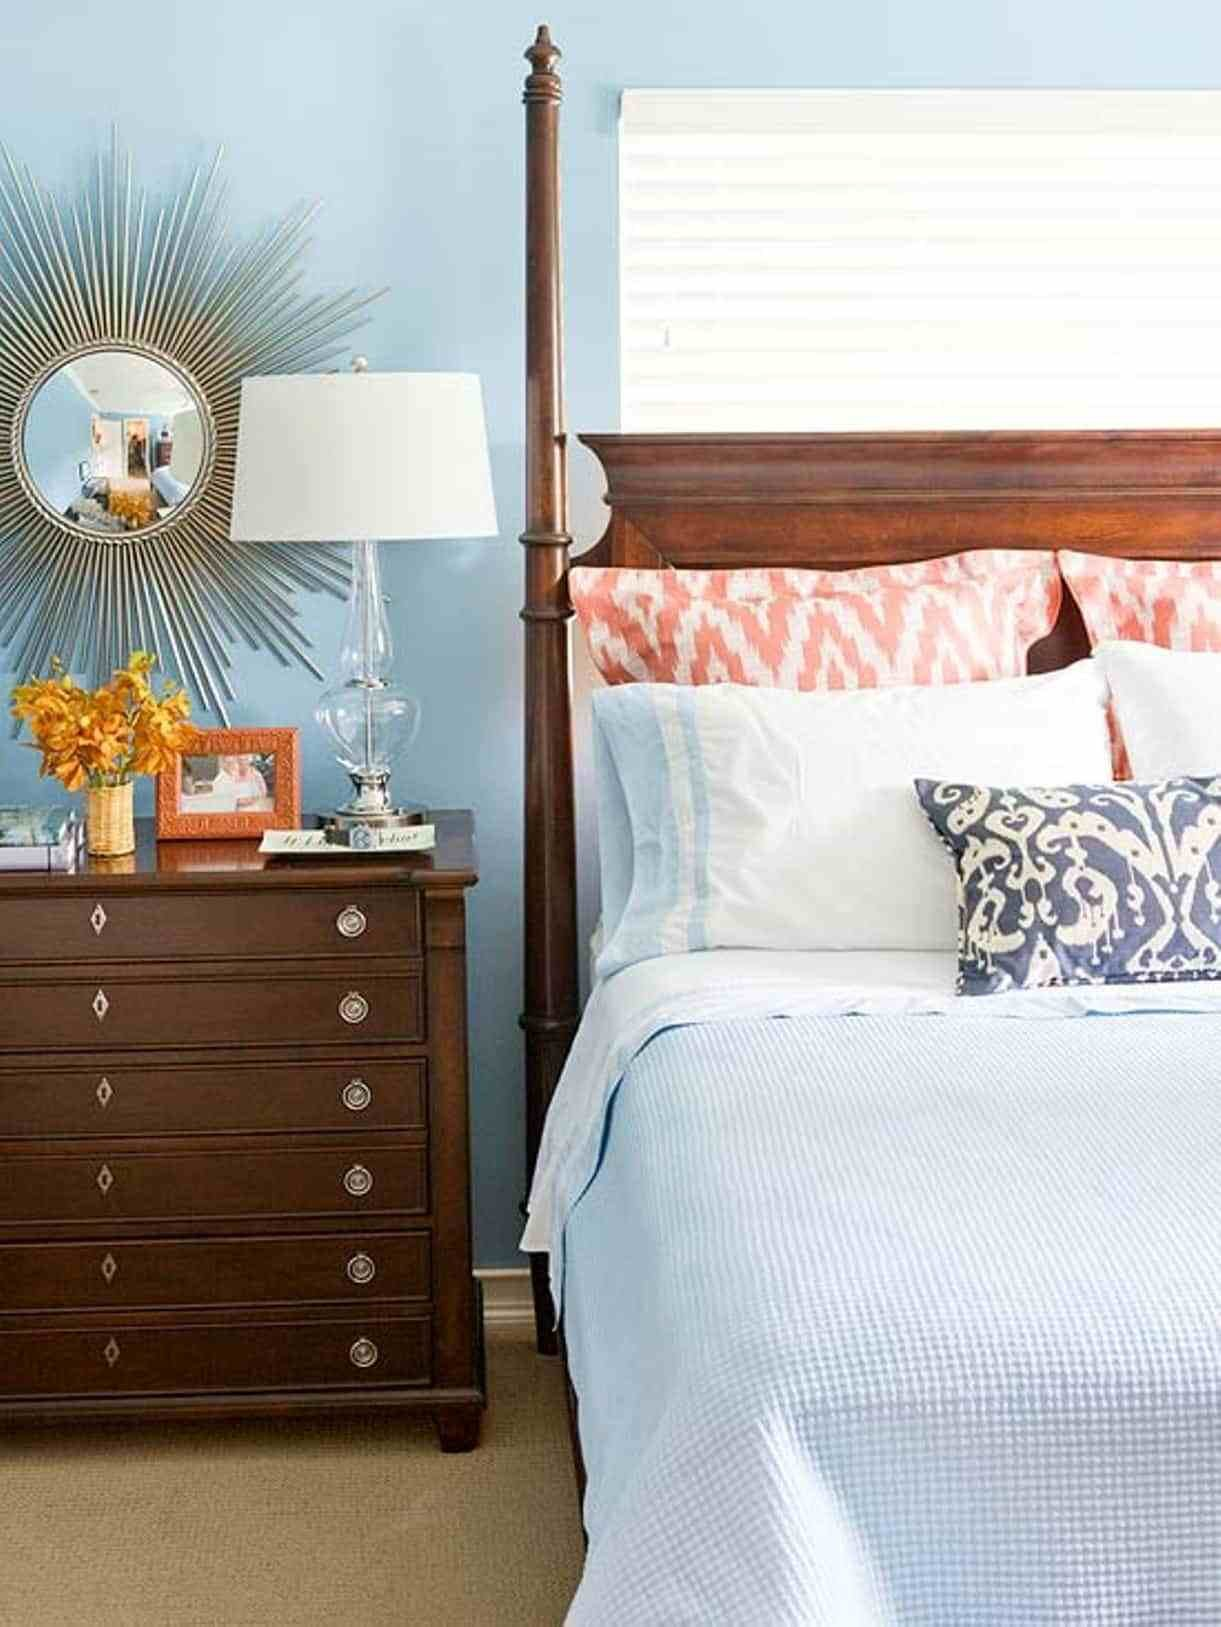 Best Bedroom With Wooden Nightstand And Sunburst Mirror With Pictures